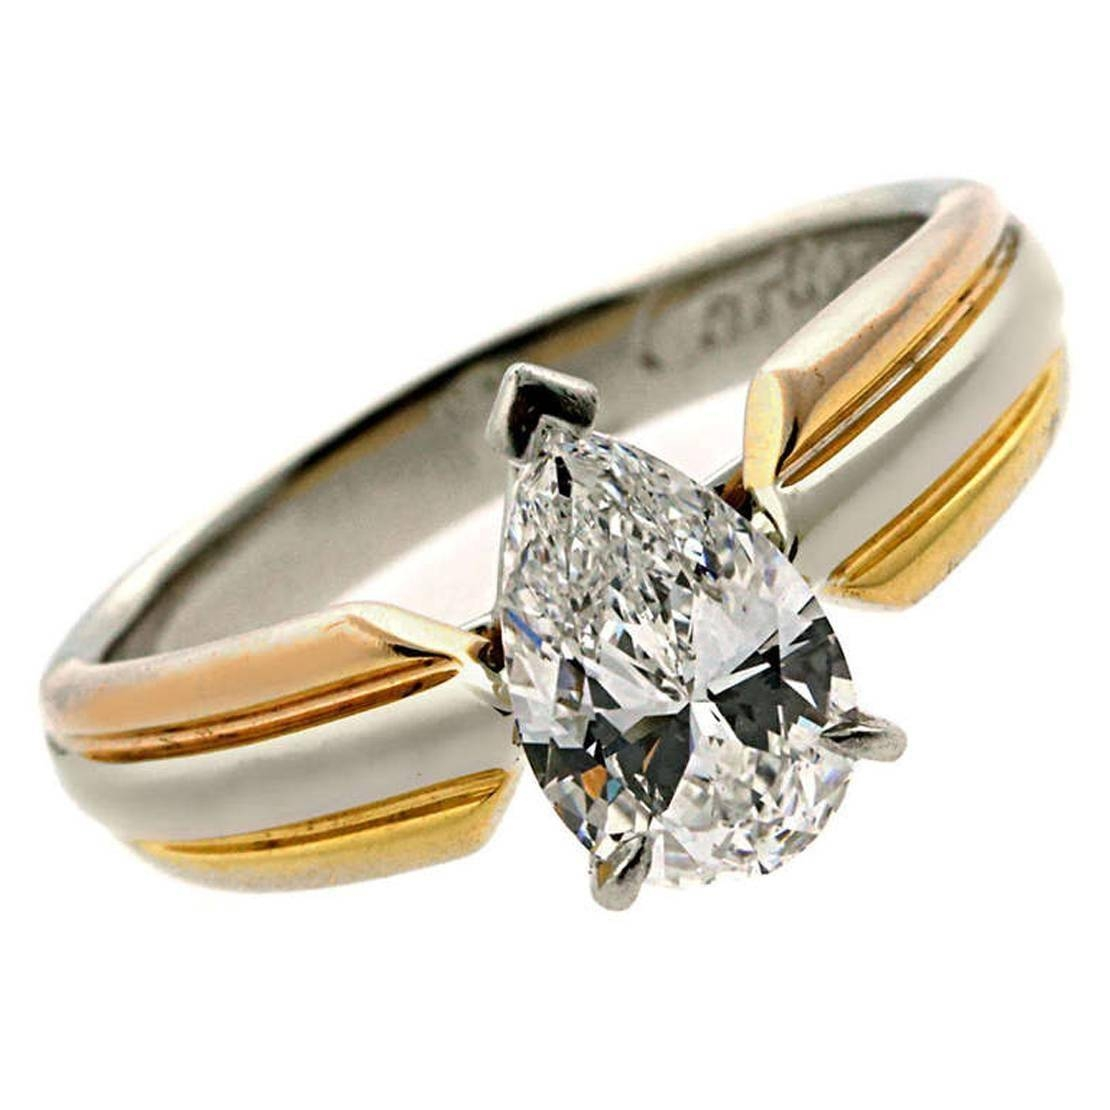 Cartier Pear Shaped Diamond Gold Platinum Engagement Ring At 1Stdibs With Regard To Trinity Diamond Engagement Rings (View 3 of 15)